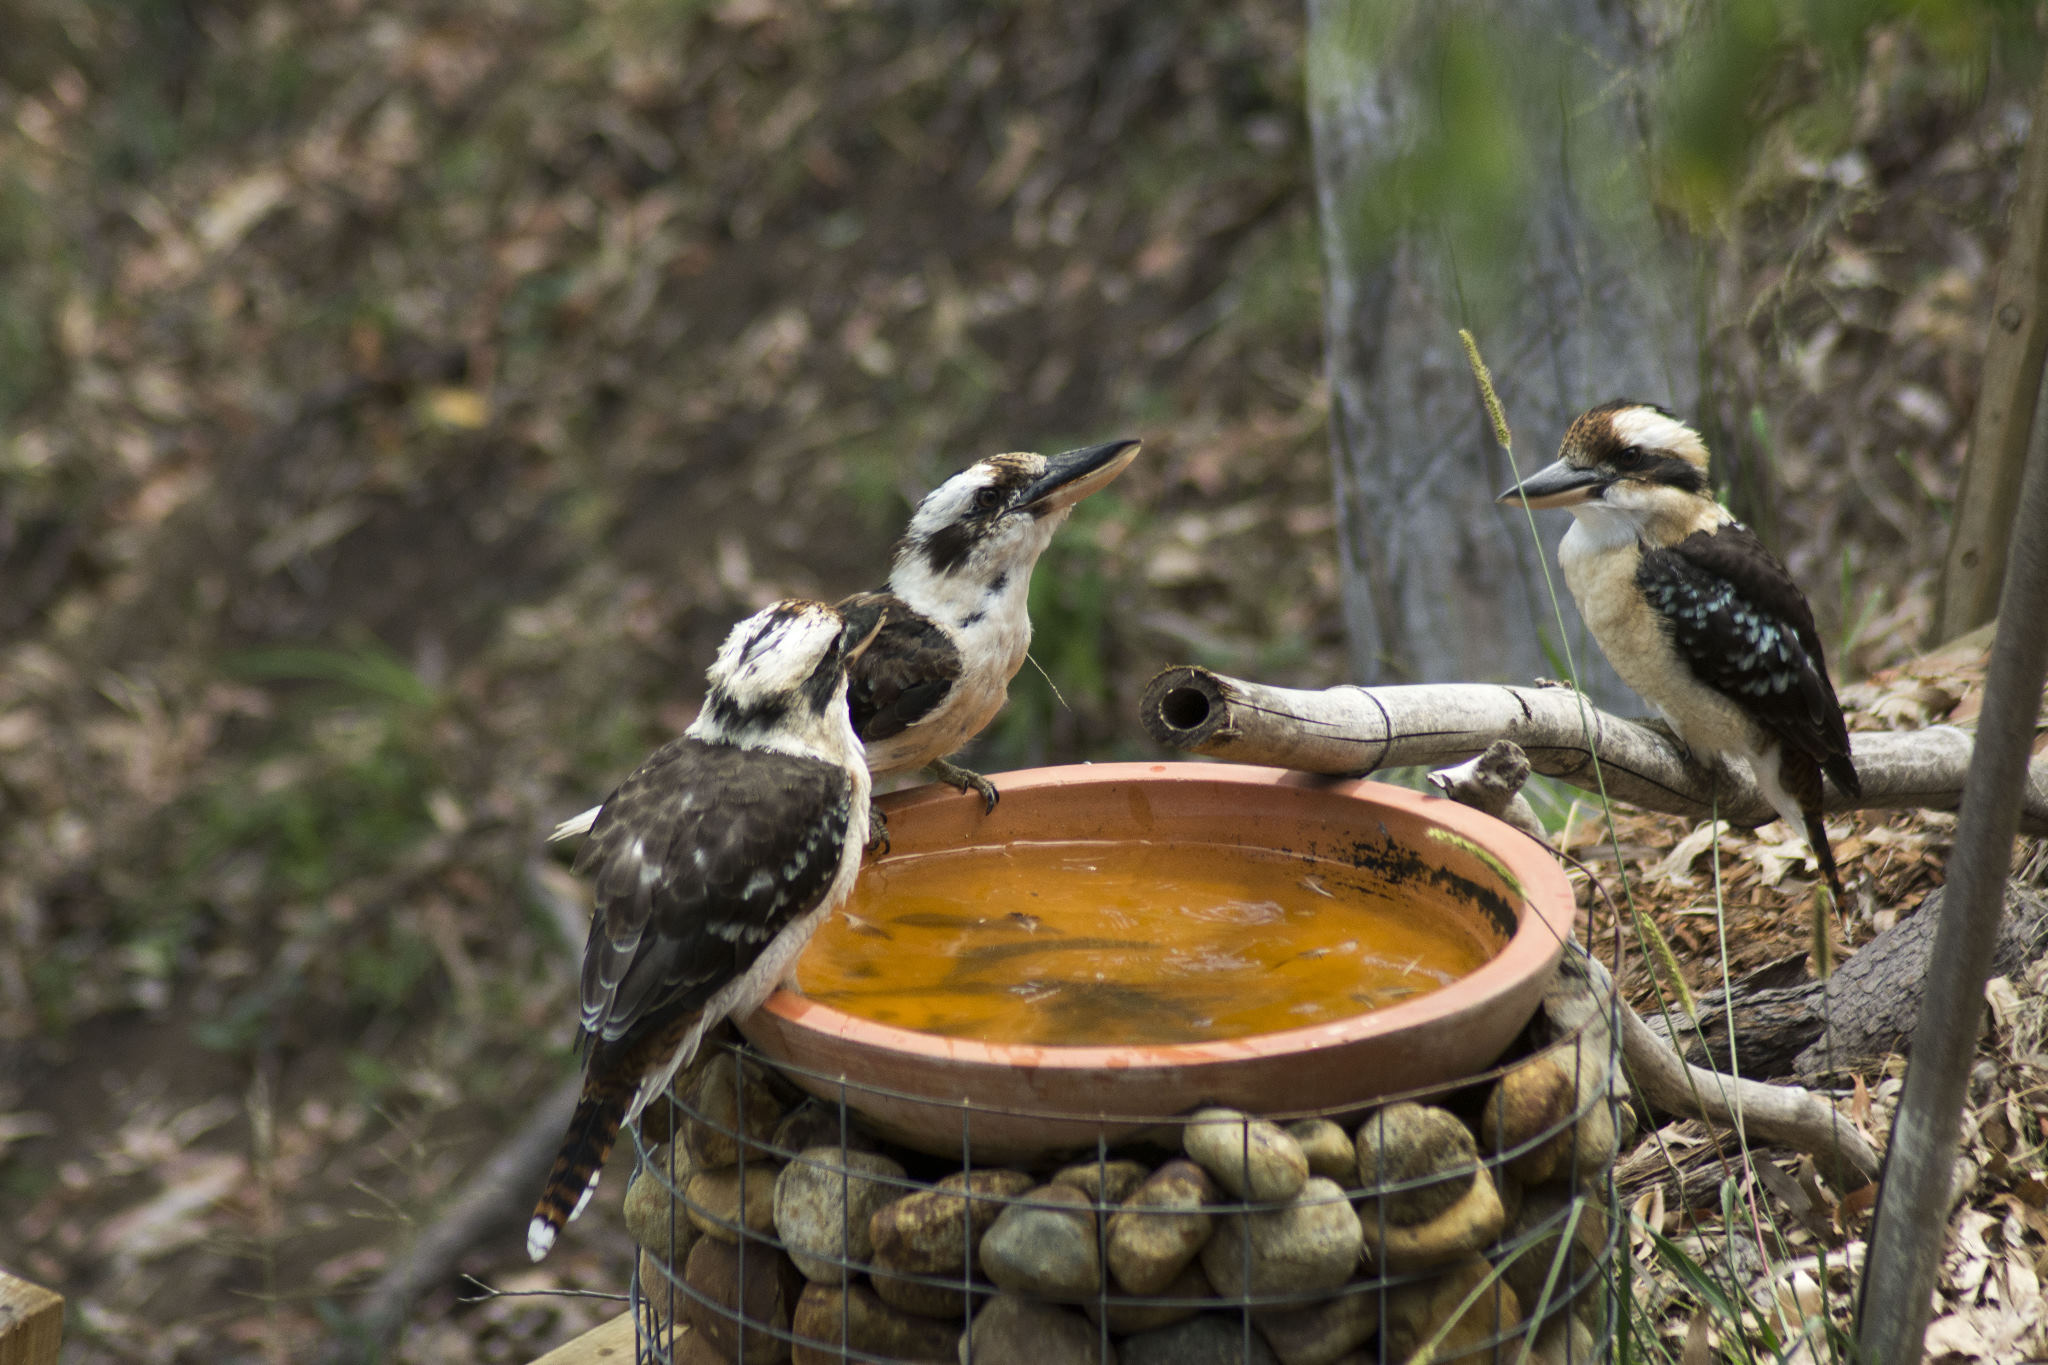 Three Kookaburras drop in for a swim.